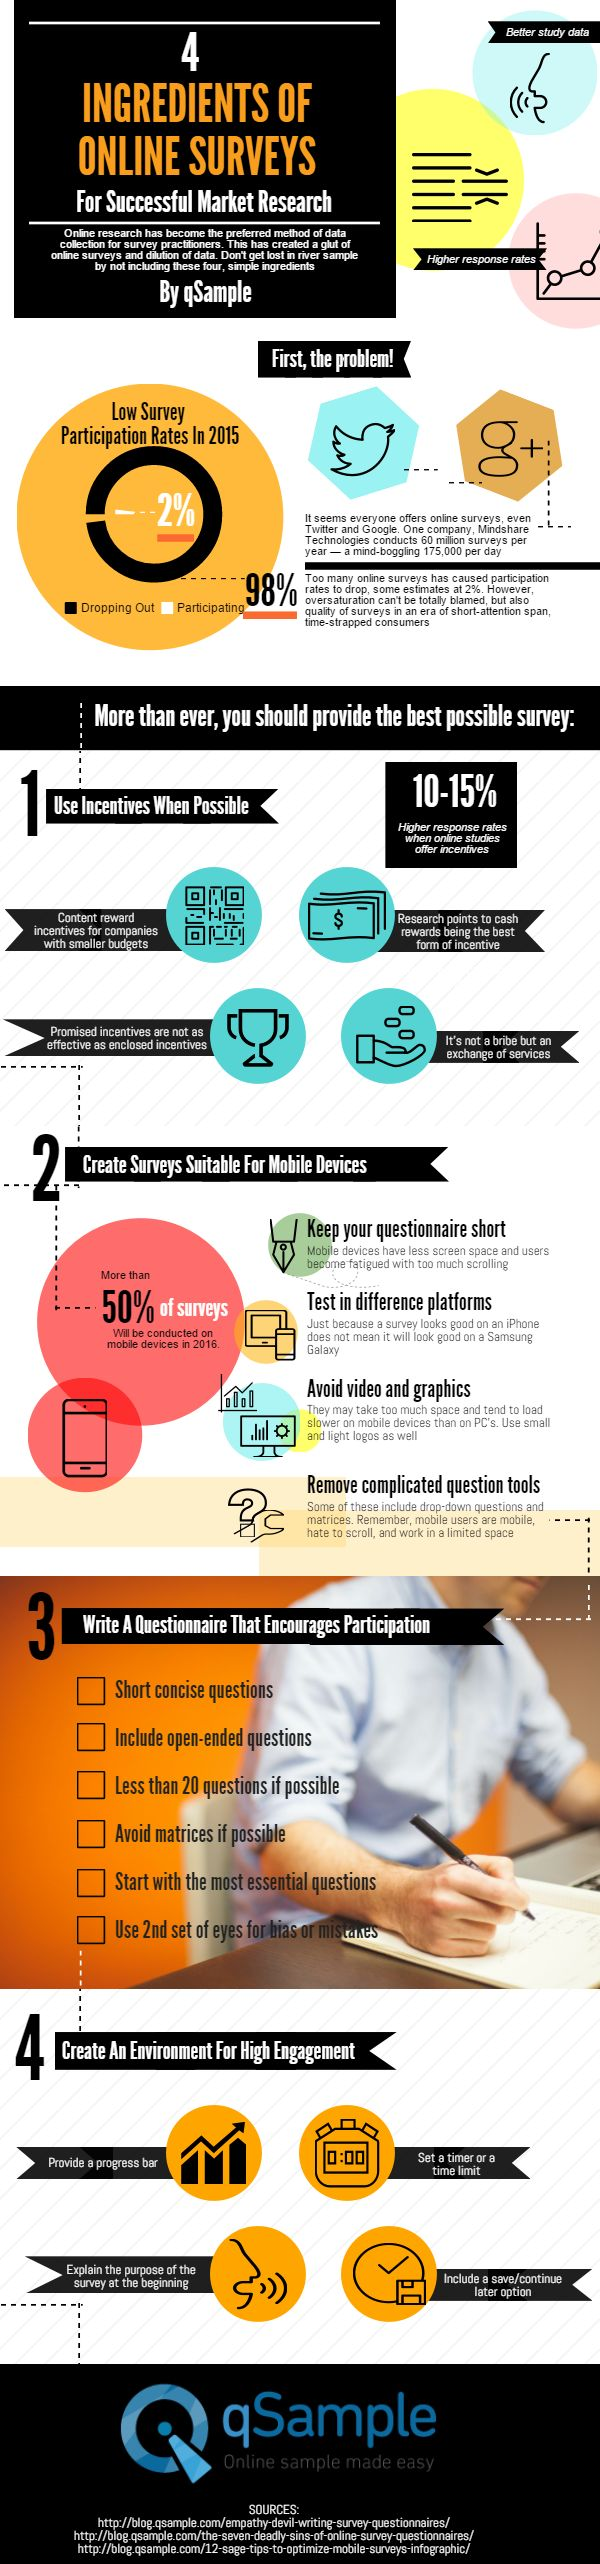 How to Create Online Surveys People Will Actually Take [ #Infographic ] by Carly Stec, @CarlyStec